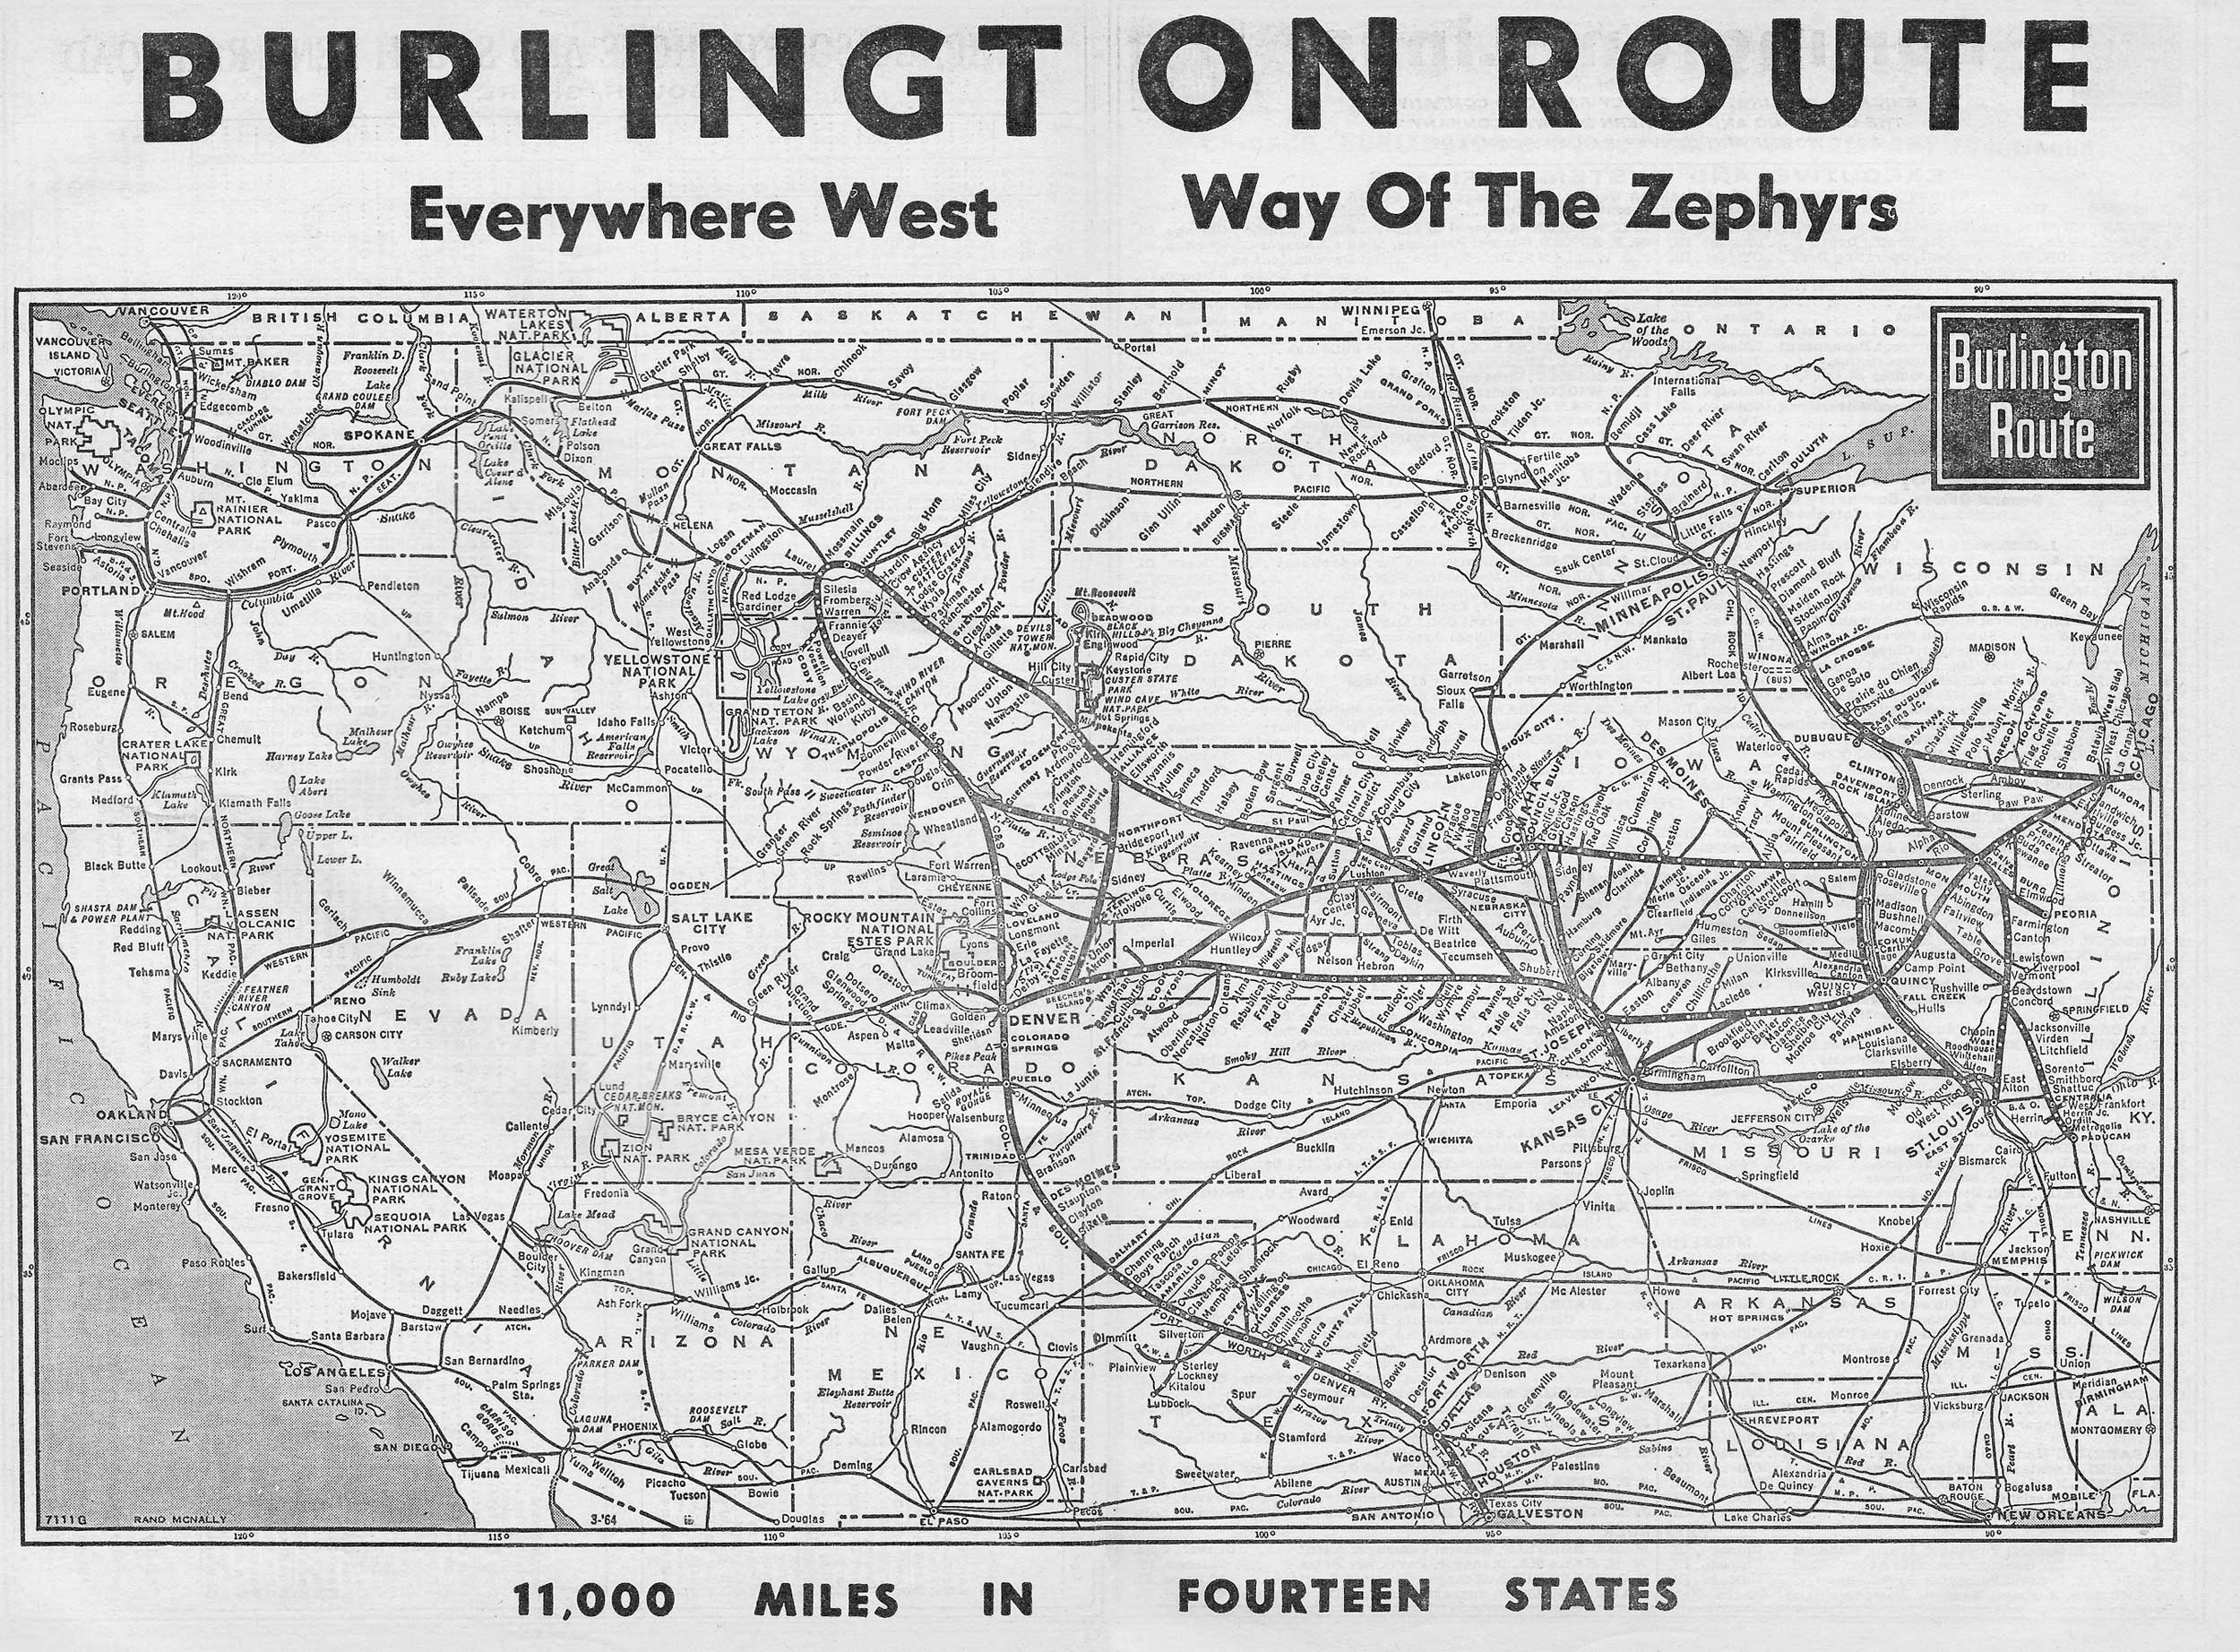 The Chicago Burlington and Quincy Railroad Way of the Zephyrs